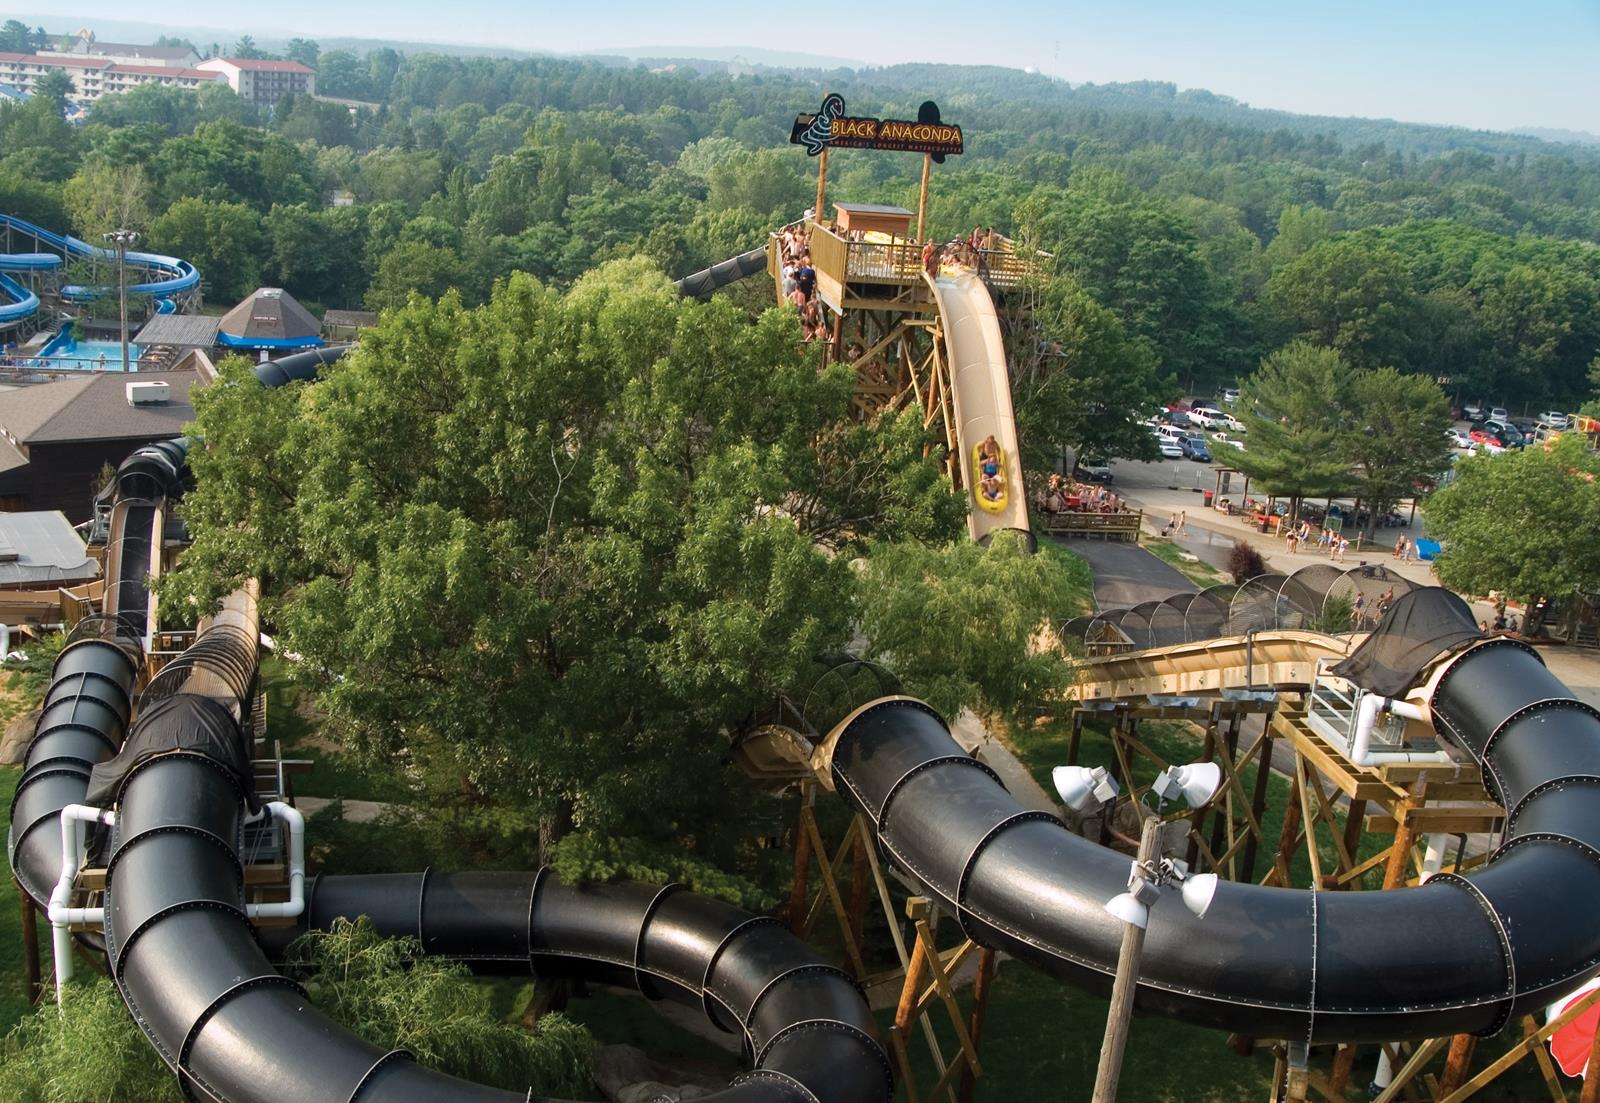 Water Parks Remain a Top Attraction for Student Groups